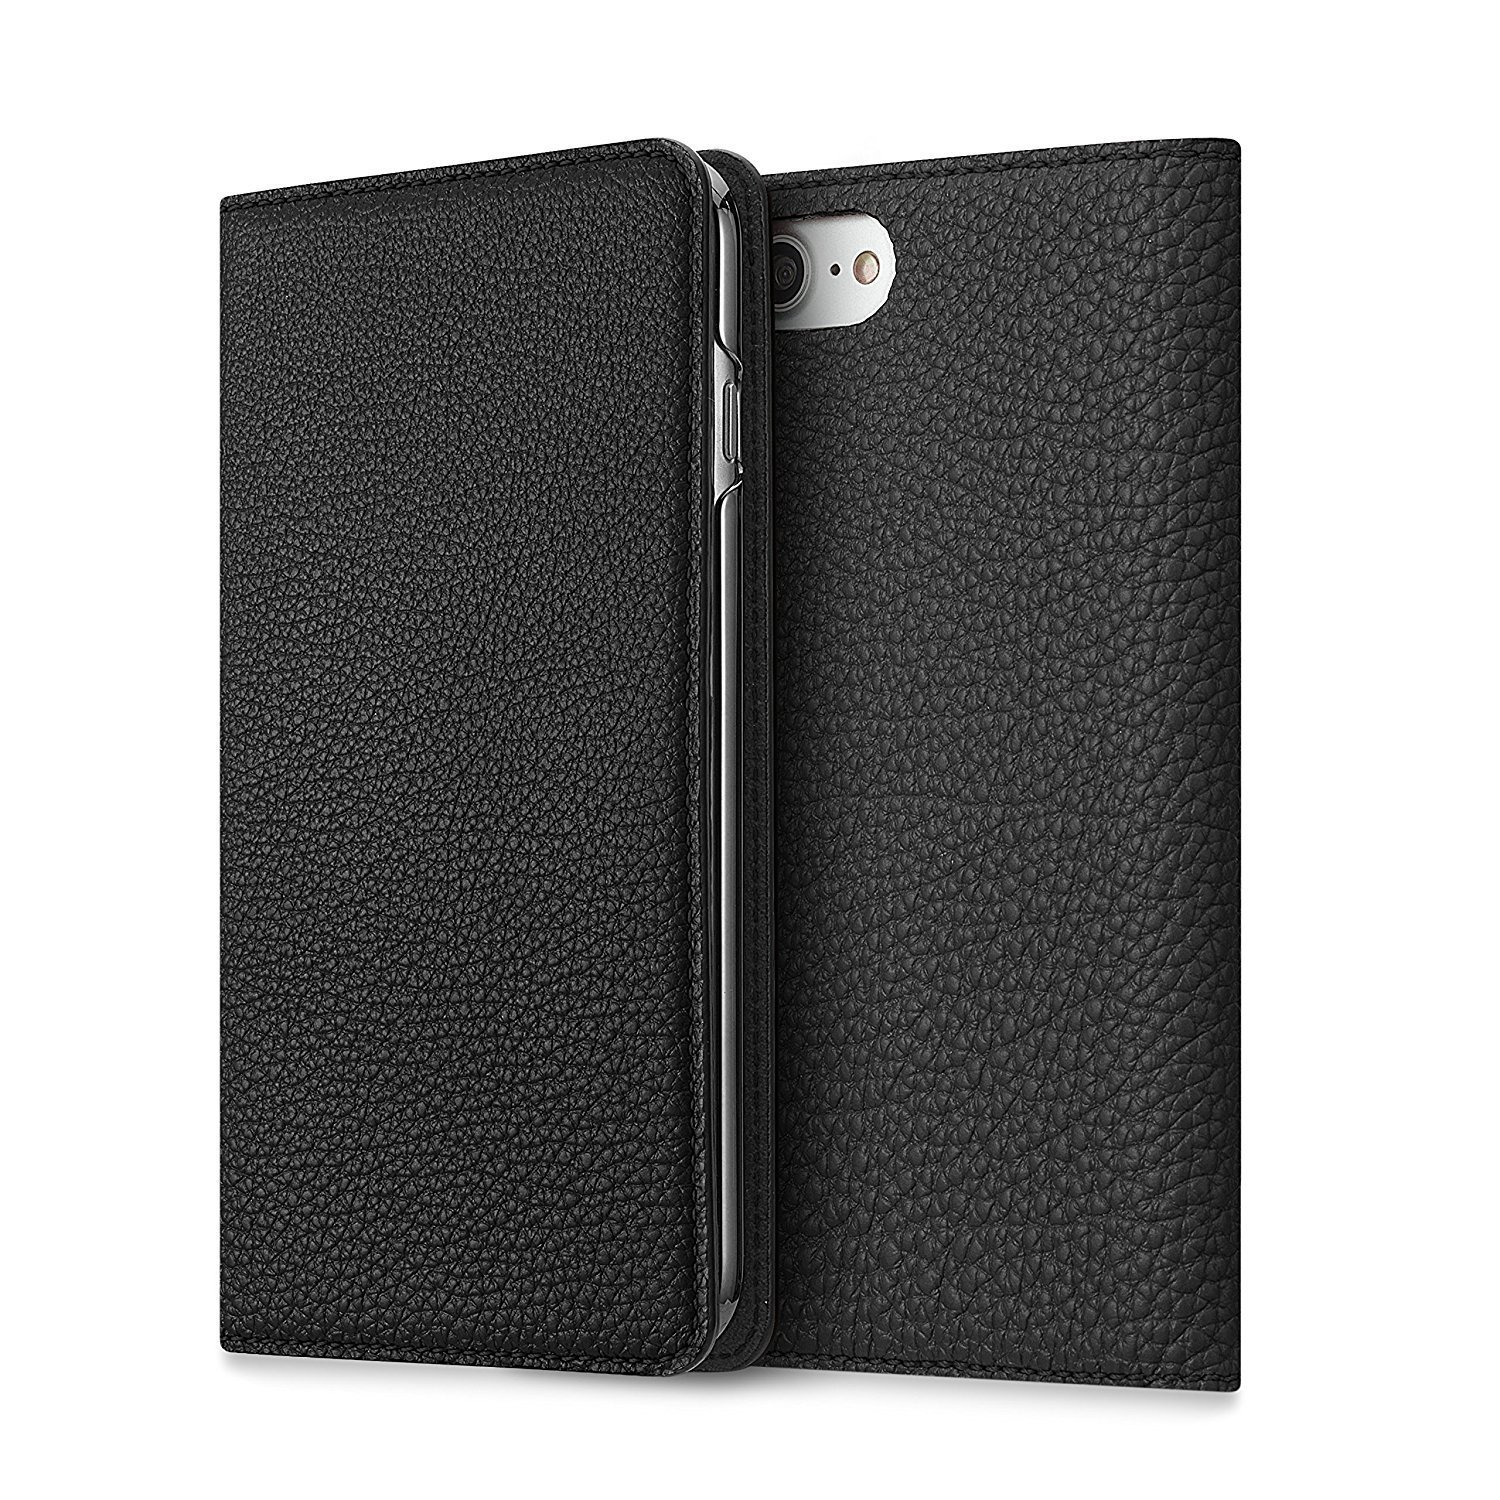 BONAVENTURA iPhone 7 Plus Leather Wallet Case (Beautiful European Full-Grain Leather) | BONAVENTURA Folio Flip Leather Cover Case [BLACK] by BONAVENTURA